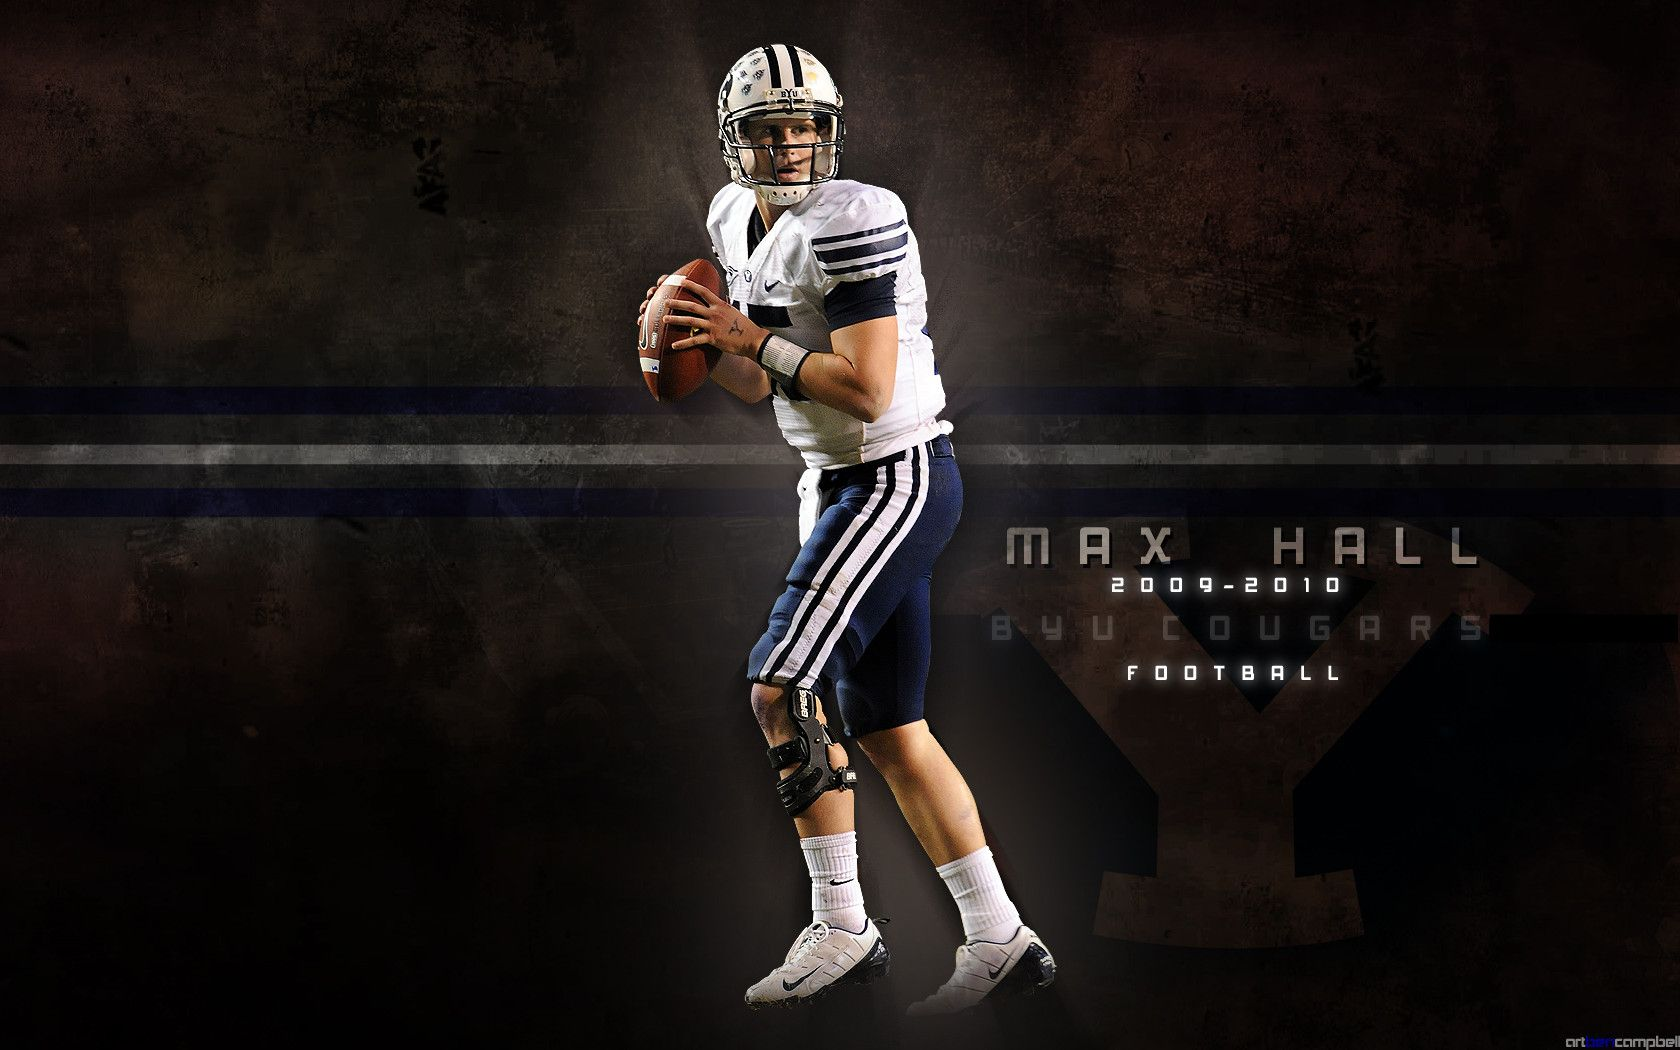 Cool College Football Wallpapers: [48+] Cool BYU Wallpapers On WallpaperSafari